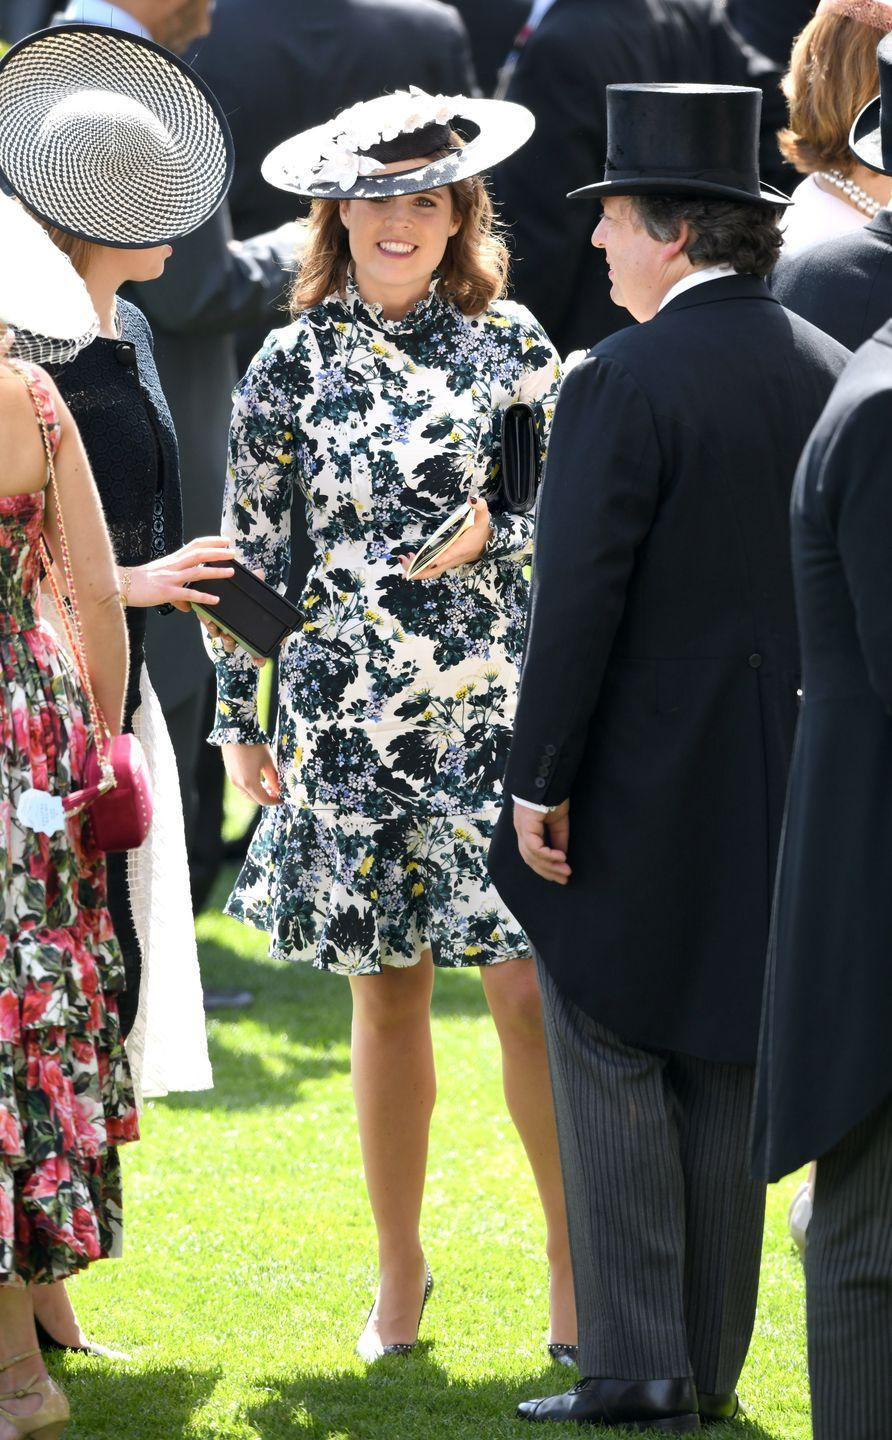 "<p>Eugenie knows how to garner attention with her fashion choices. But in 2018, she went for classic ladylike details with a silk floral dress that pays subtle homage to her grandmother, Queen Elizabeth. Apparently, the designer's inspiration was the <a href=""https://www.goodhousekeeping.com/beauty/fashion/a21763903/princess-eugenie-royal-ascot-queen-elizabeth-outfit/"" rel=""nofollow noopener"" target=""_blank"" data-ylk=""slk:Queen's own 1950's high necklines, button details, and flounced hem"" class=""link rapid-noclick-resp"">Queen's own 1950's high necklines, button details, and flounced hem</a>. </p>"